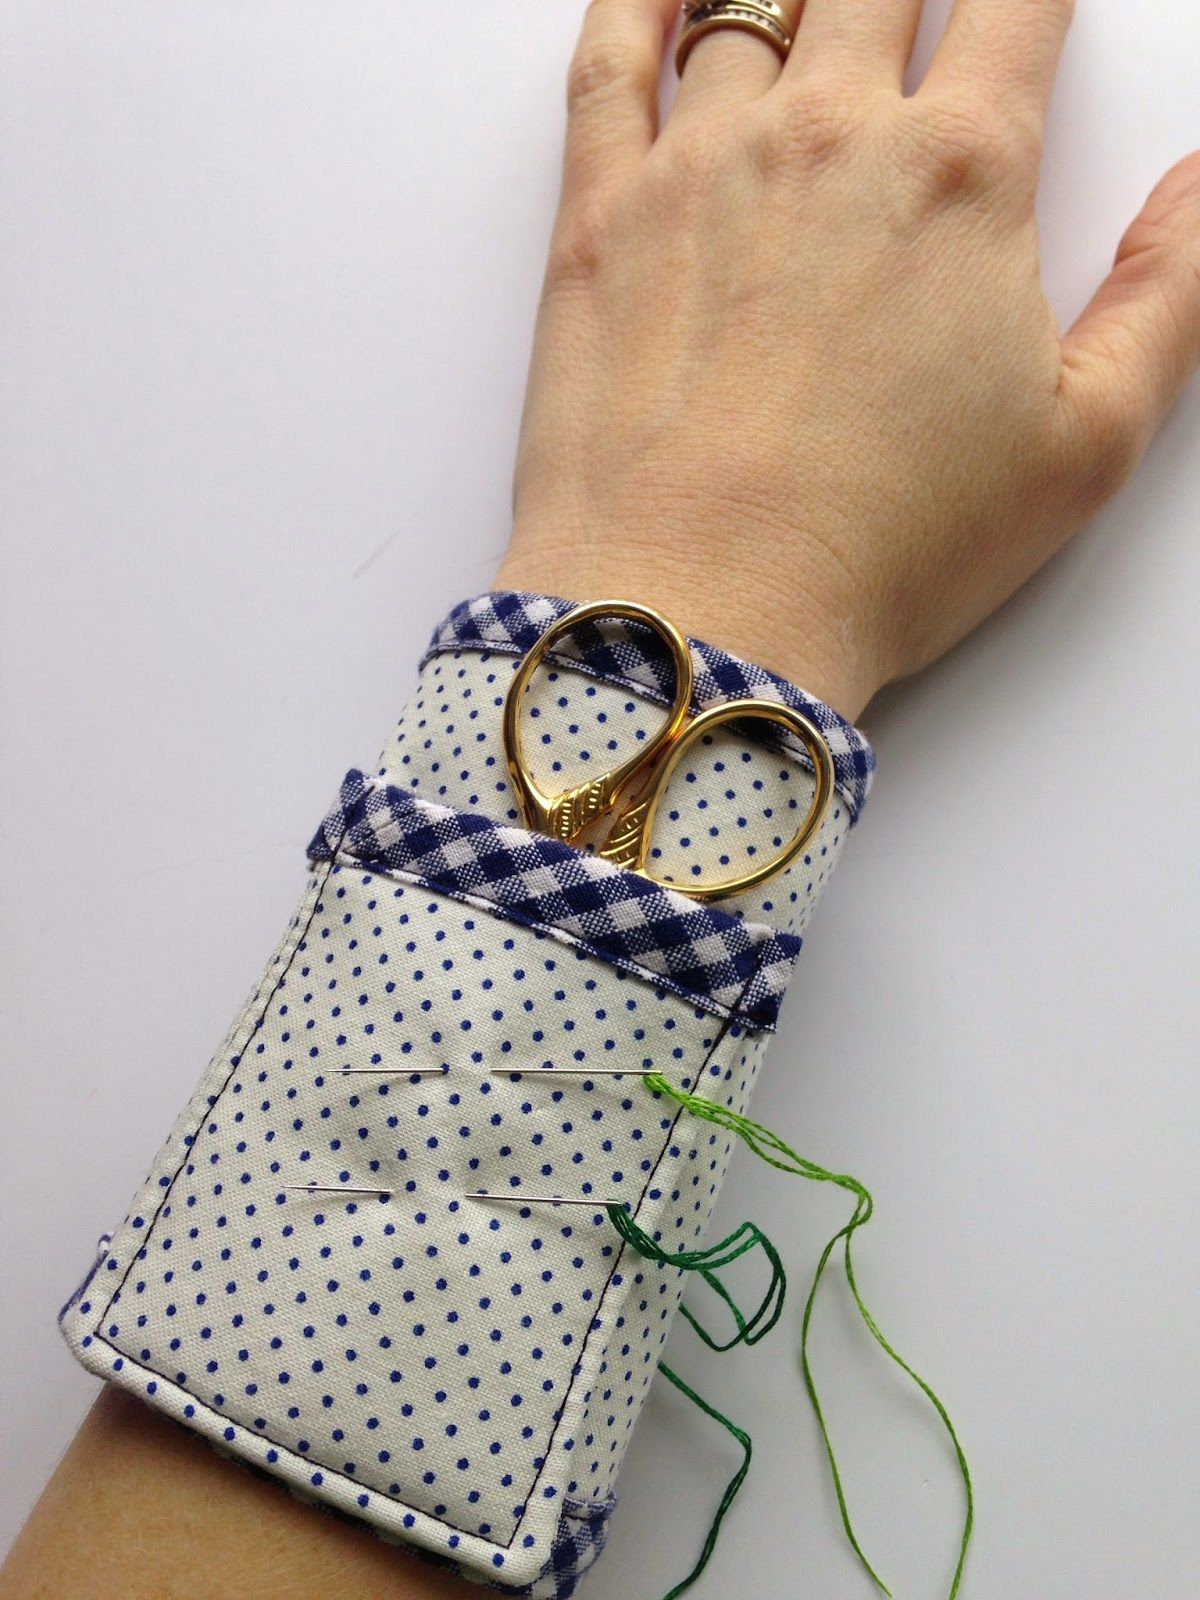 Make a Sewing & Quilting Wrist Cuff | Sew Clever! | Pinterest ... : small quilting projects gifts - Adamdwight.com